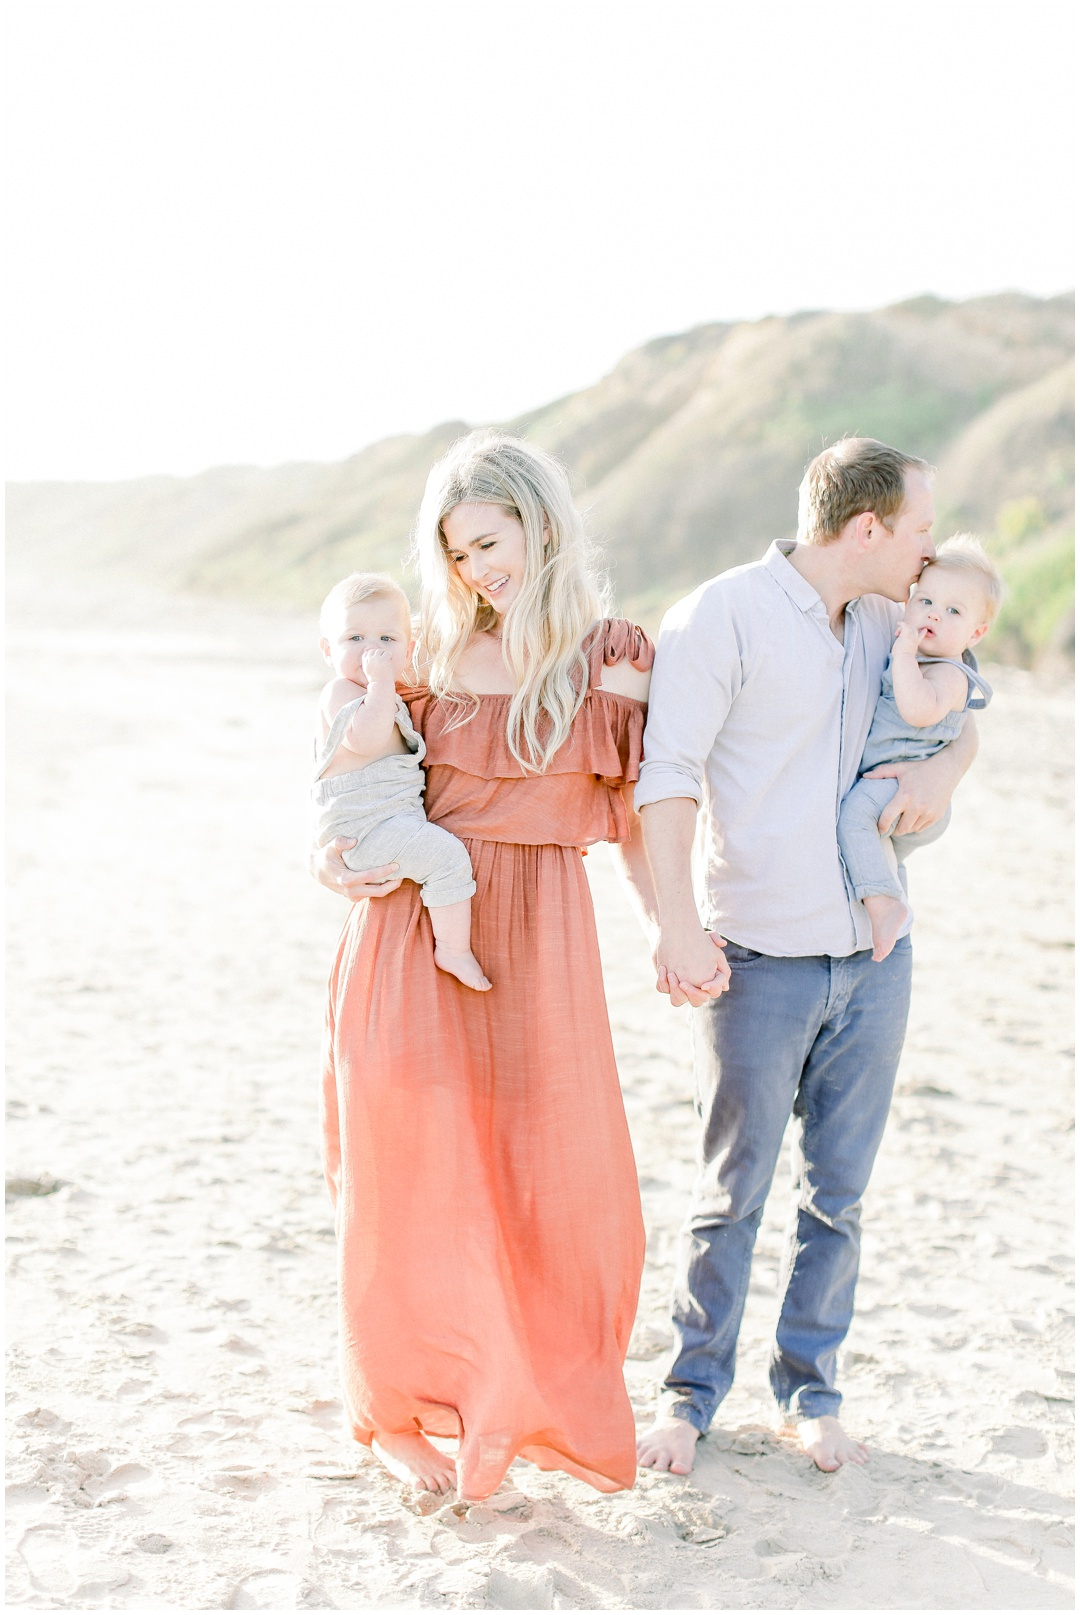 Newport_Beach_Newborn_Light_Airy_Natural_Photographer_Newport_Beach_Photographer_Orange_County_Family_Photographer_Cori_Kleckner_Photography_Huntington_Beach_Photographer_Family_OC_Newborn_Kelly_Bandak_Nik_Bandak__3517.jpg